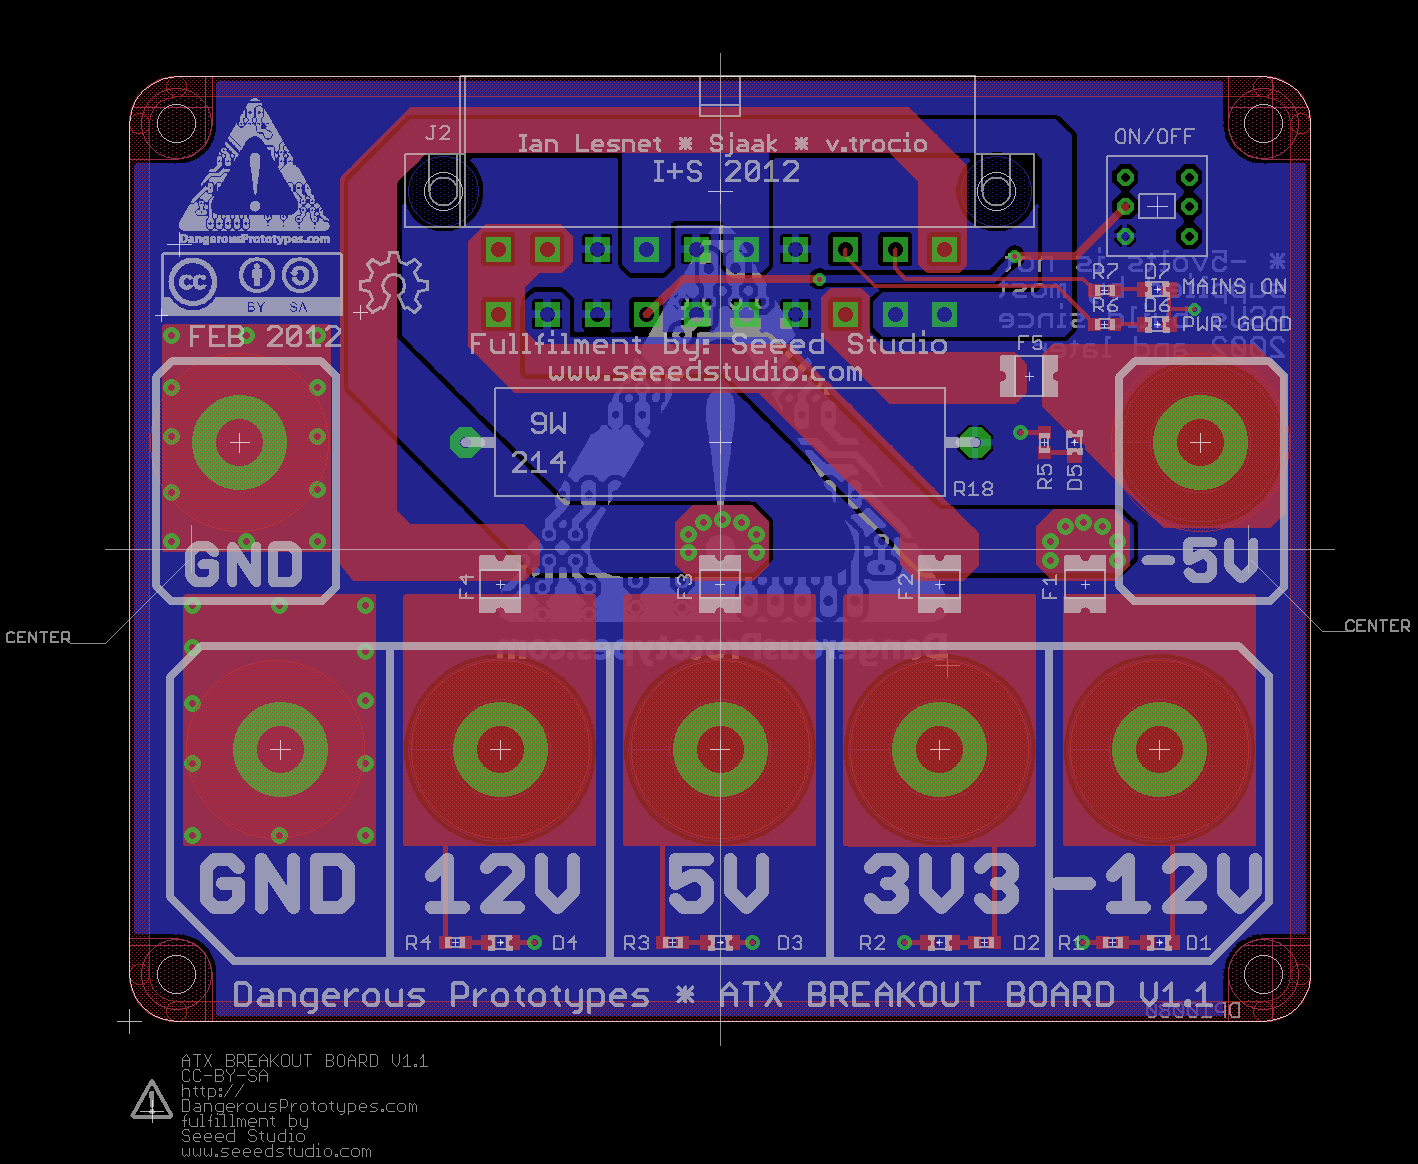 New Prototype Atx Breakout Board Dangerous Prototypes Rocker Switch Wiring How To Make A Bench Power Supply From An Old Click For Full Size Placement Image